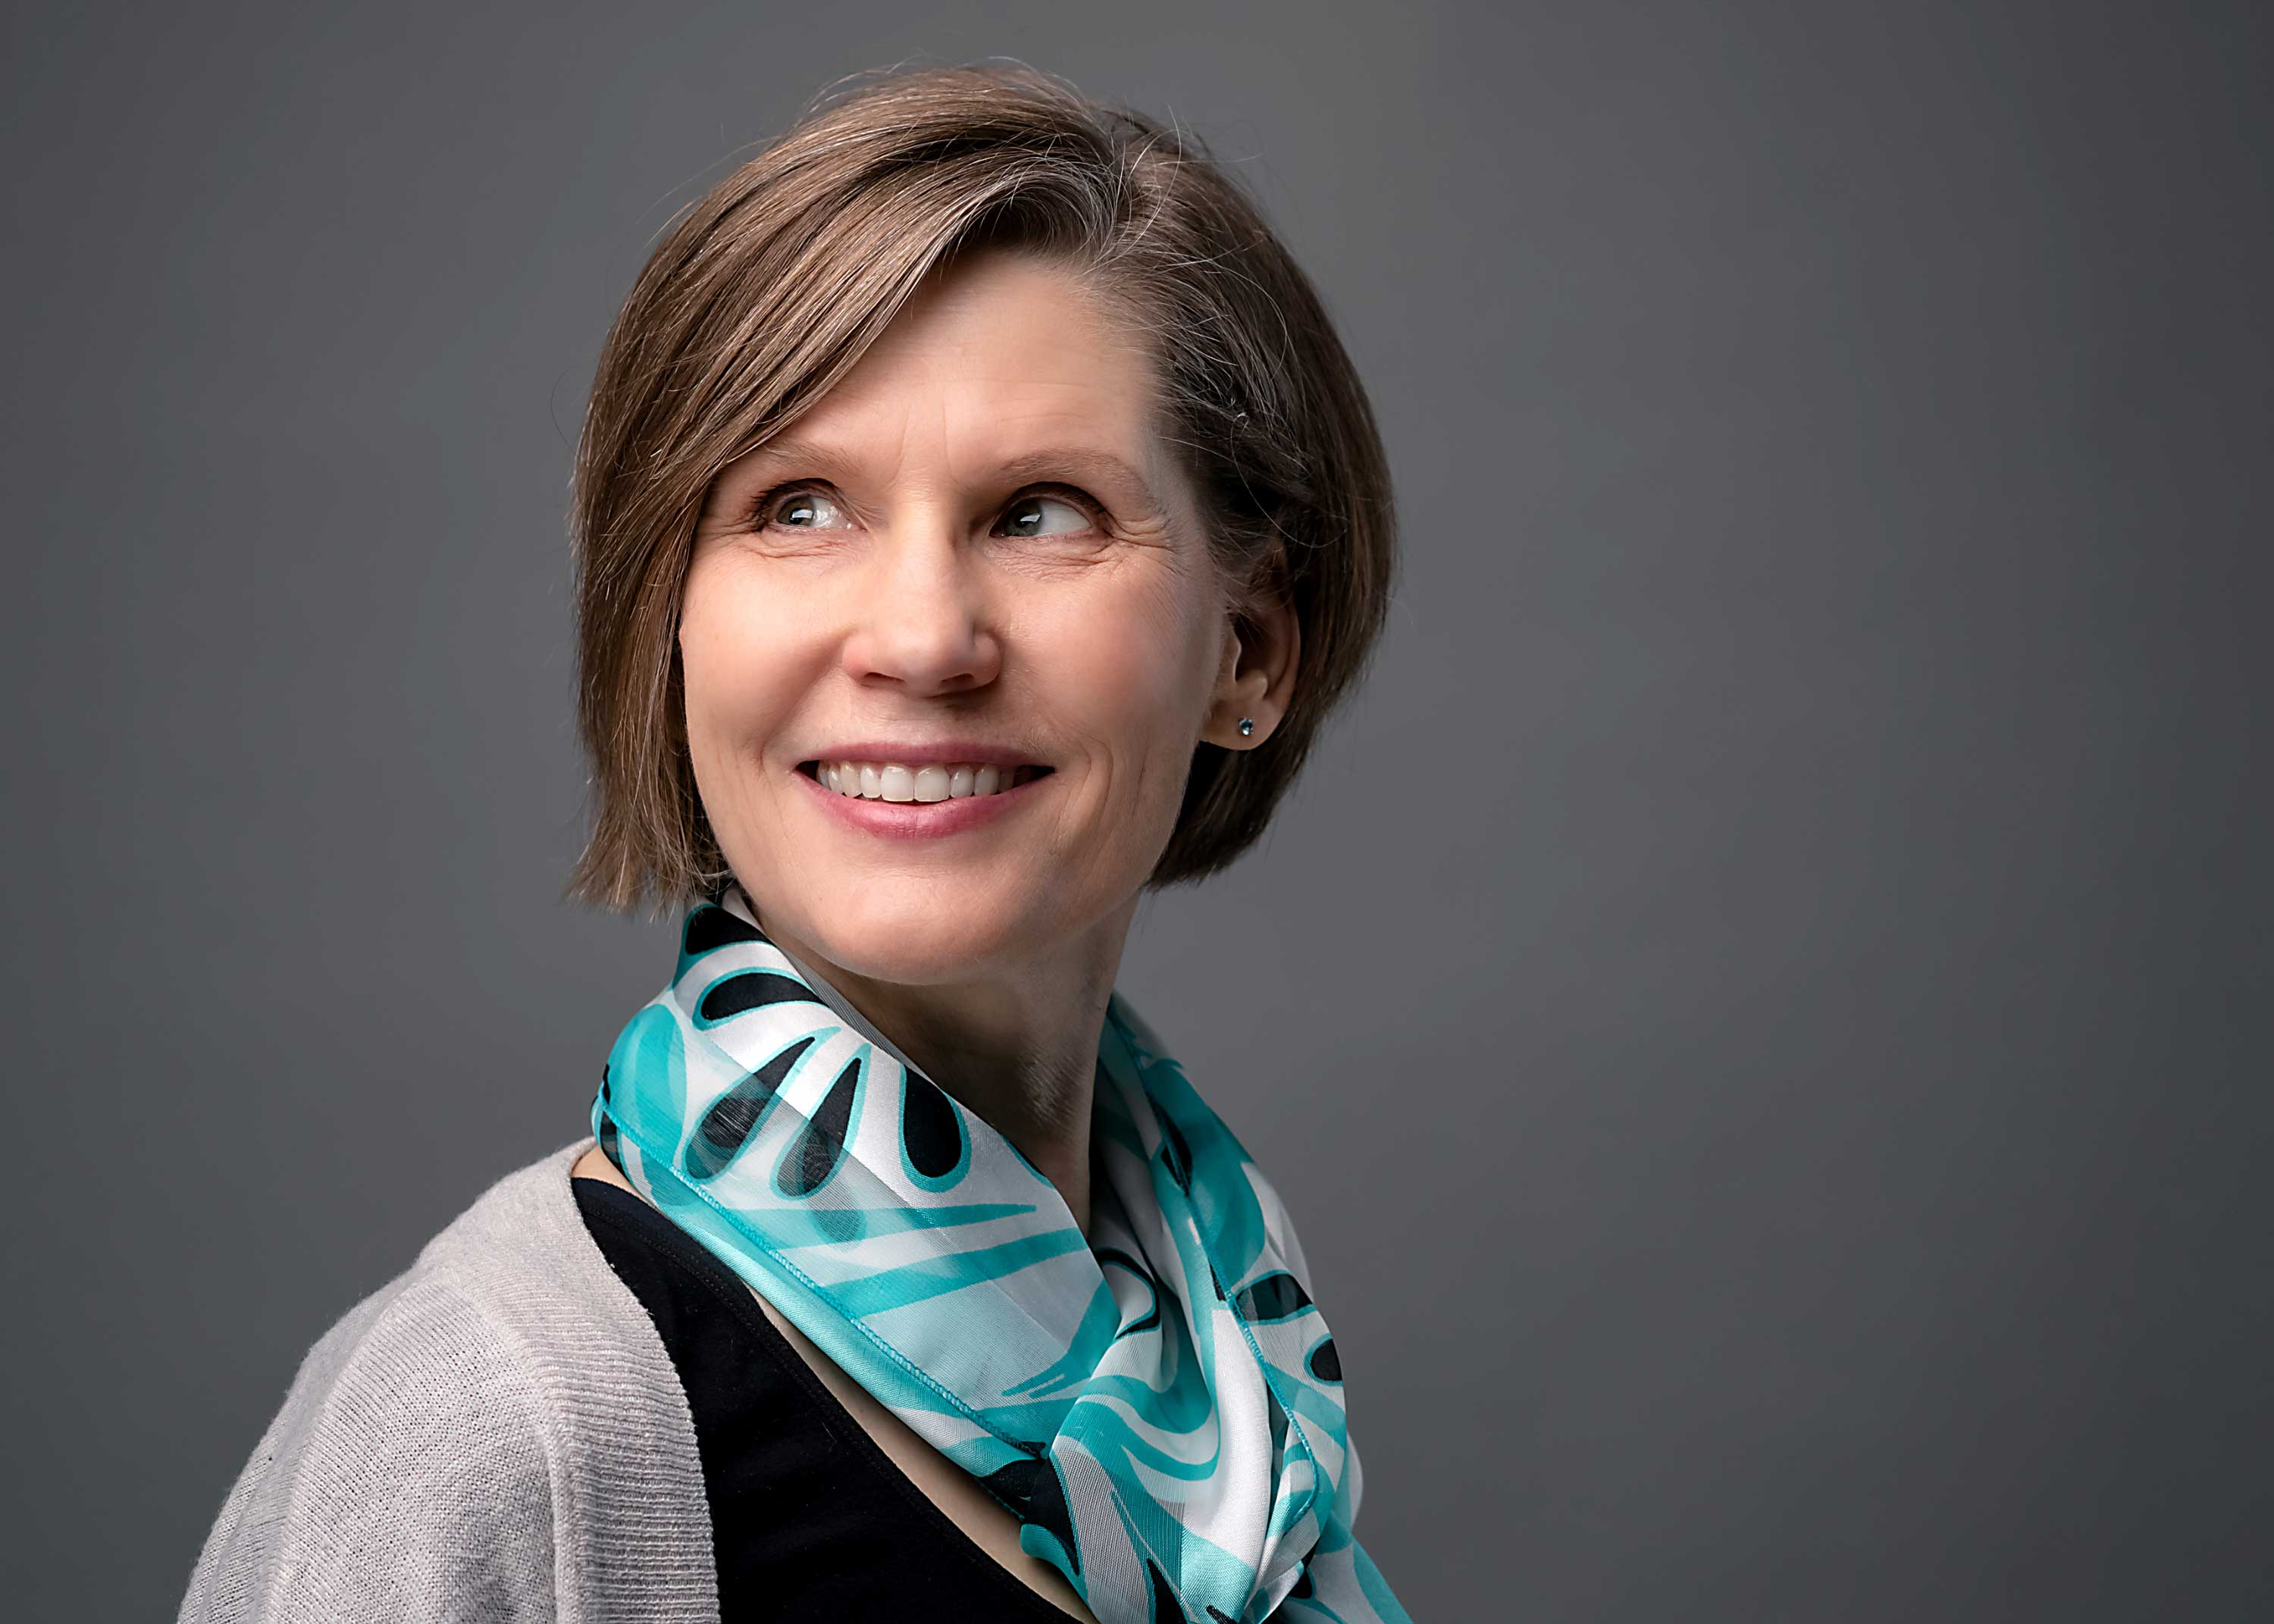 Jennifer Jennings, Canada Research Chair in Entrepreneurship, Gender and Family Business